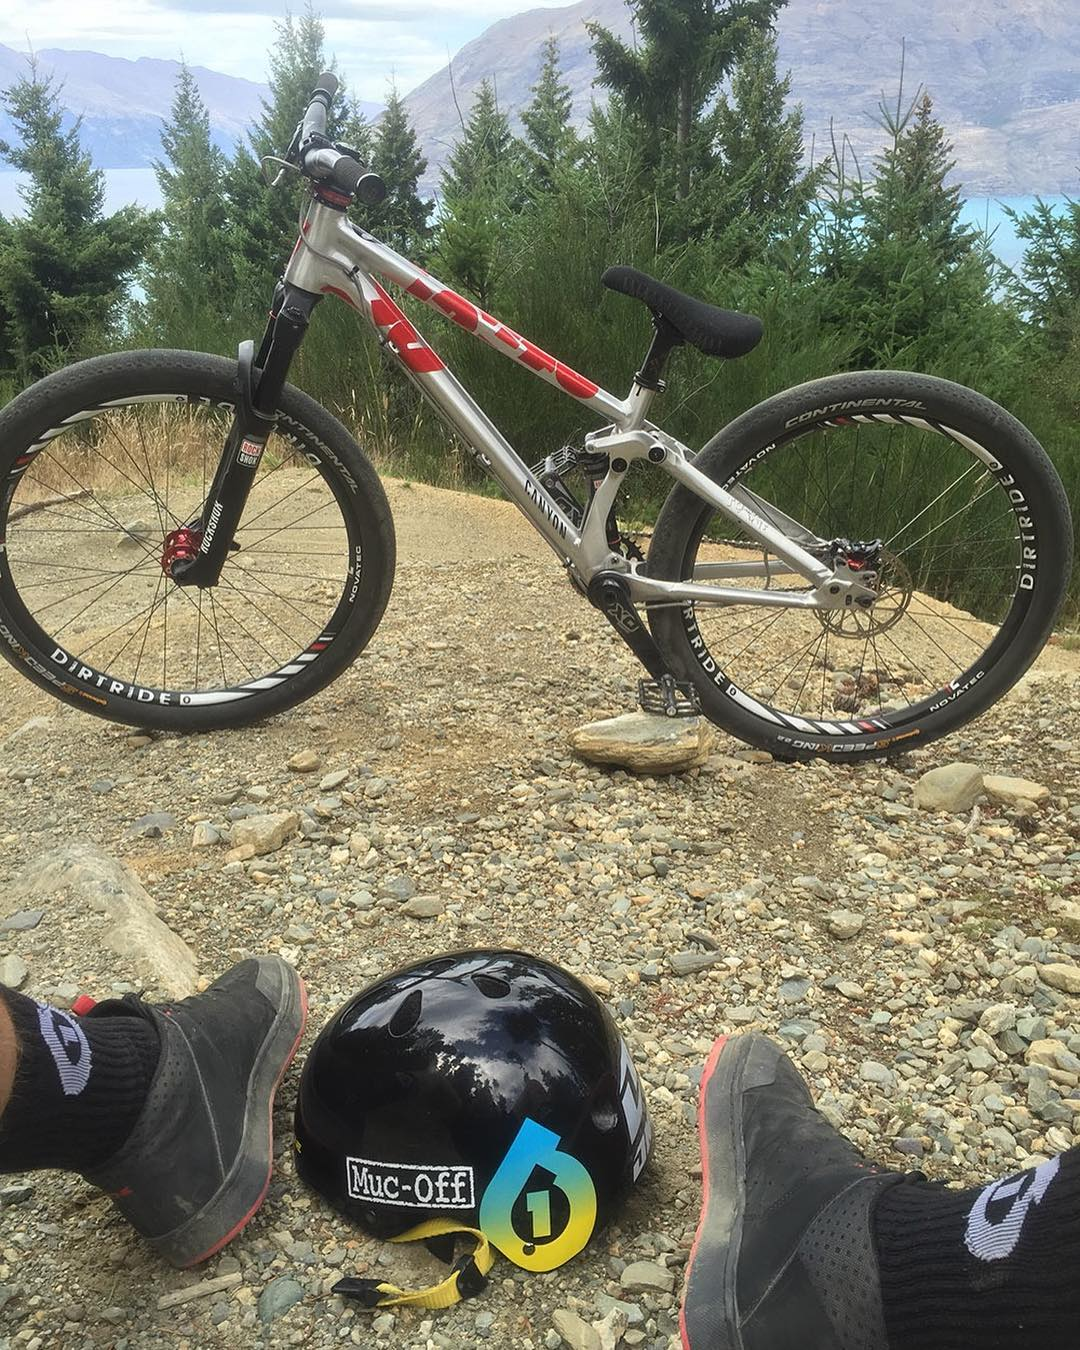 @tomaslemoine #HappySaturday View... What are you riding today?! #SixSixOne #DirtLidPlus #661Protection #ProtectFun